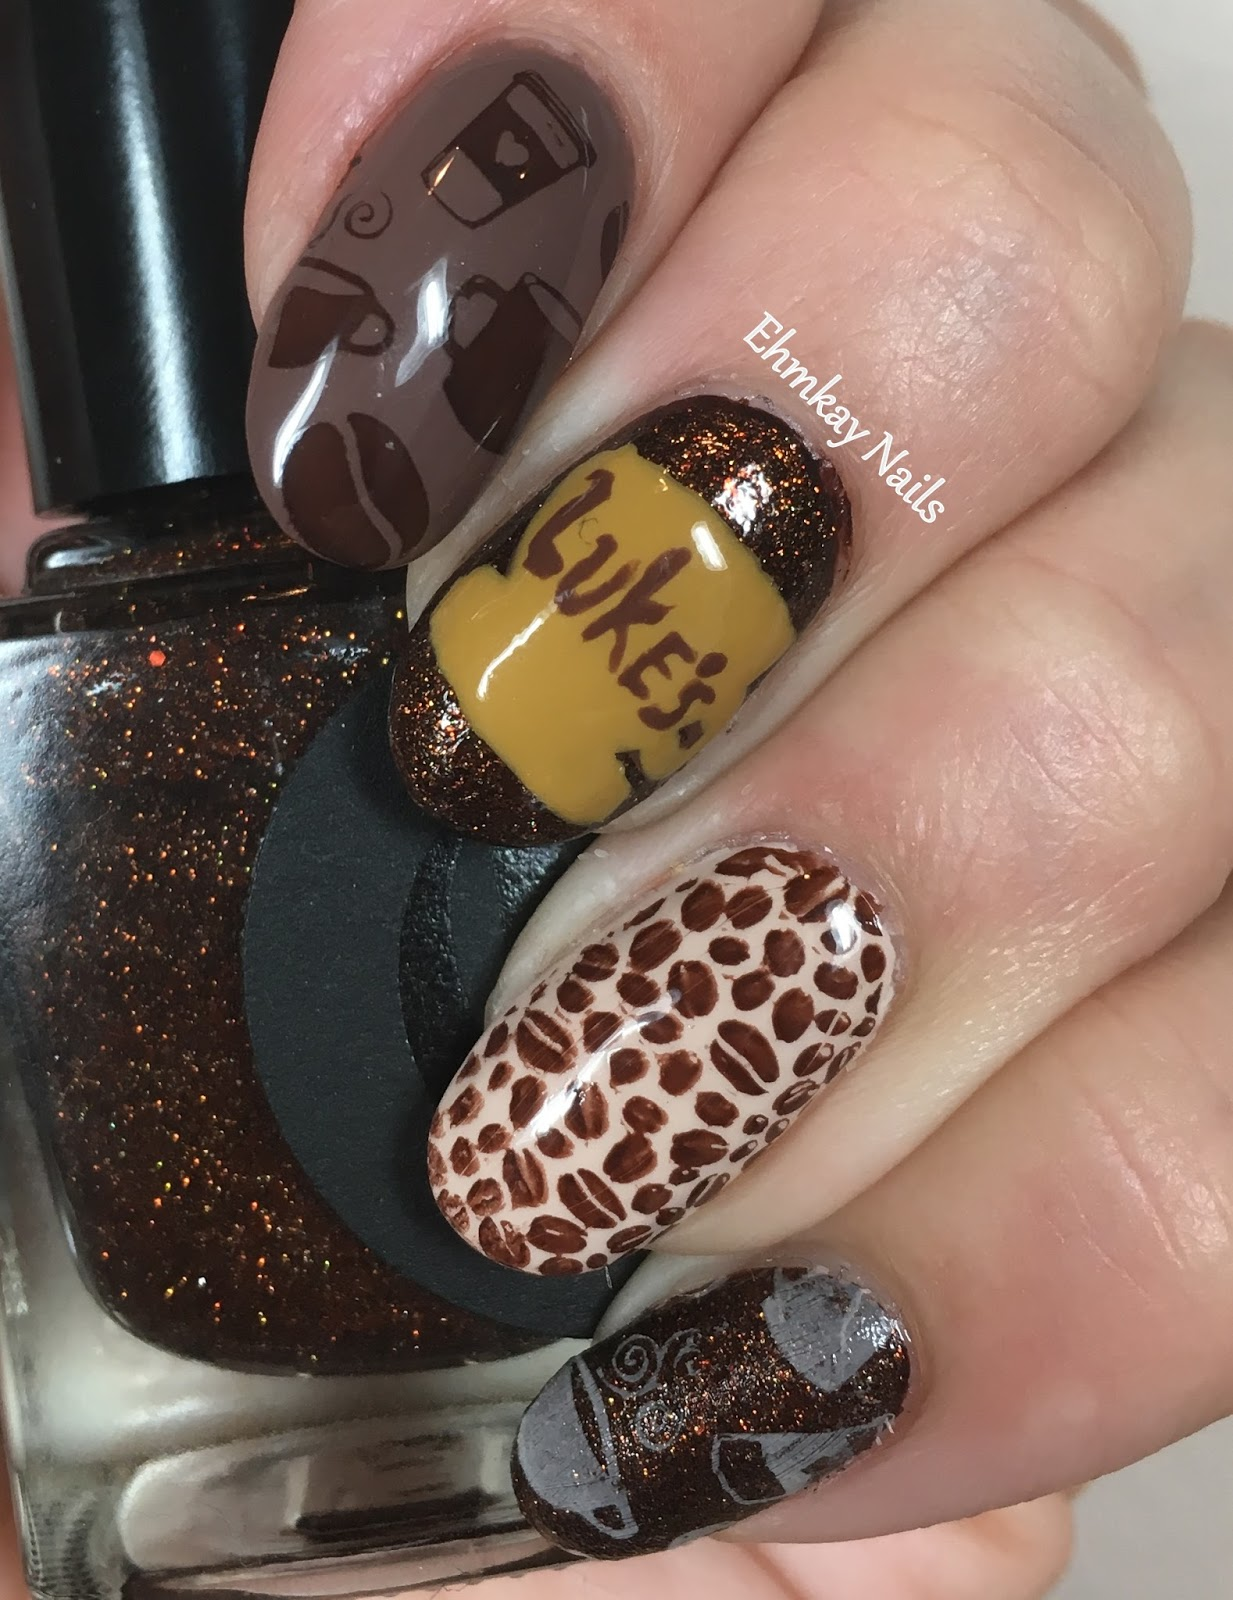 ehmkay nails: Gilmore Girls Nail Art for the Ultimate Coffee Lover